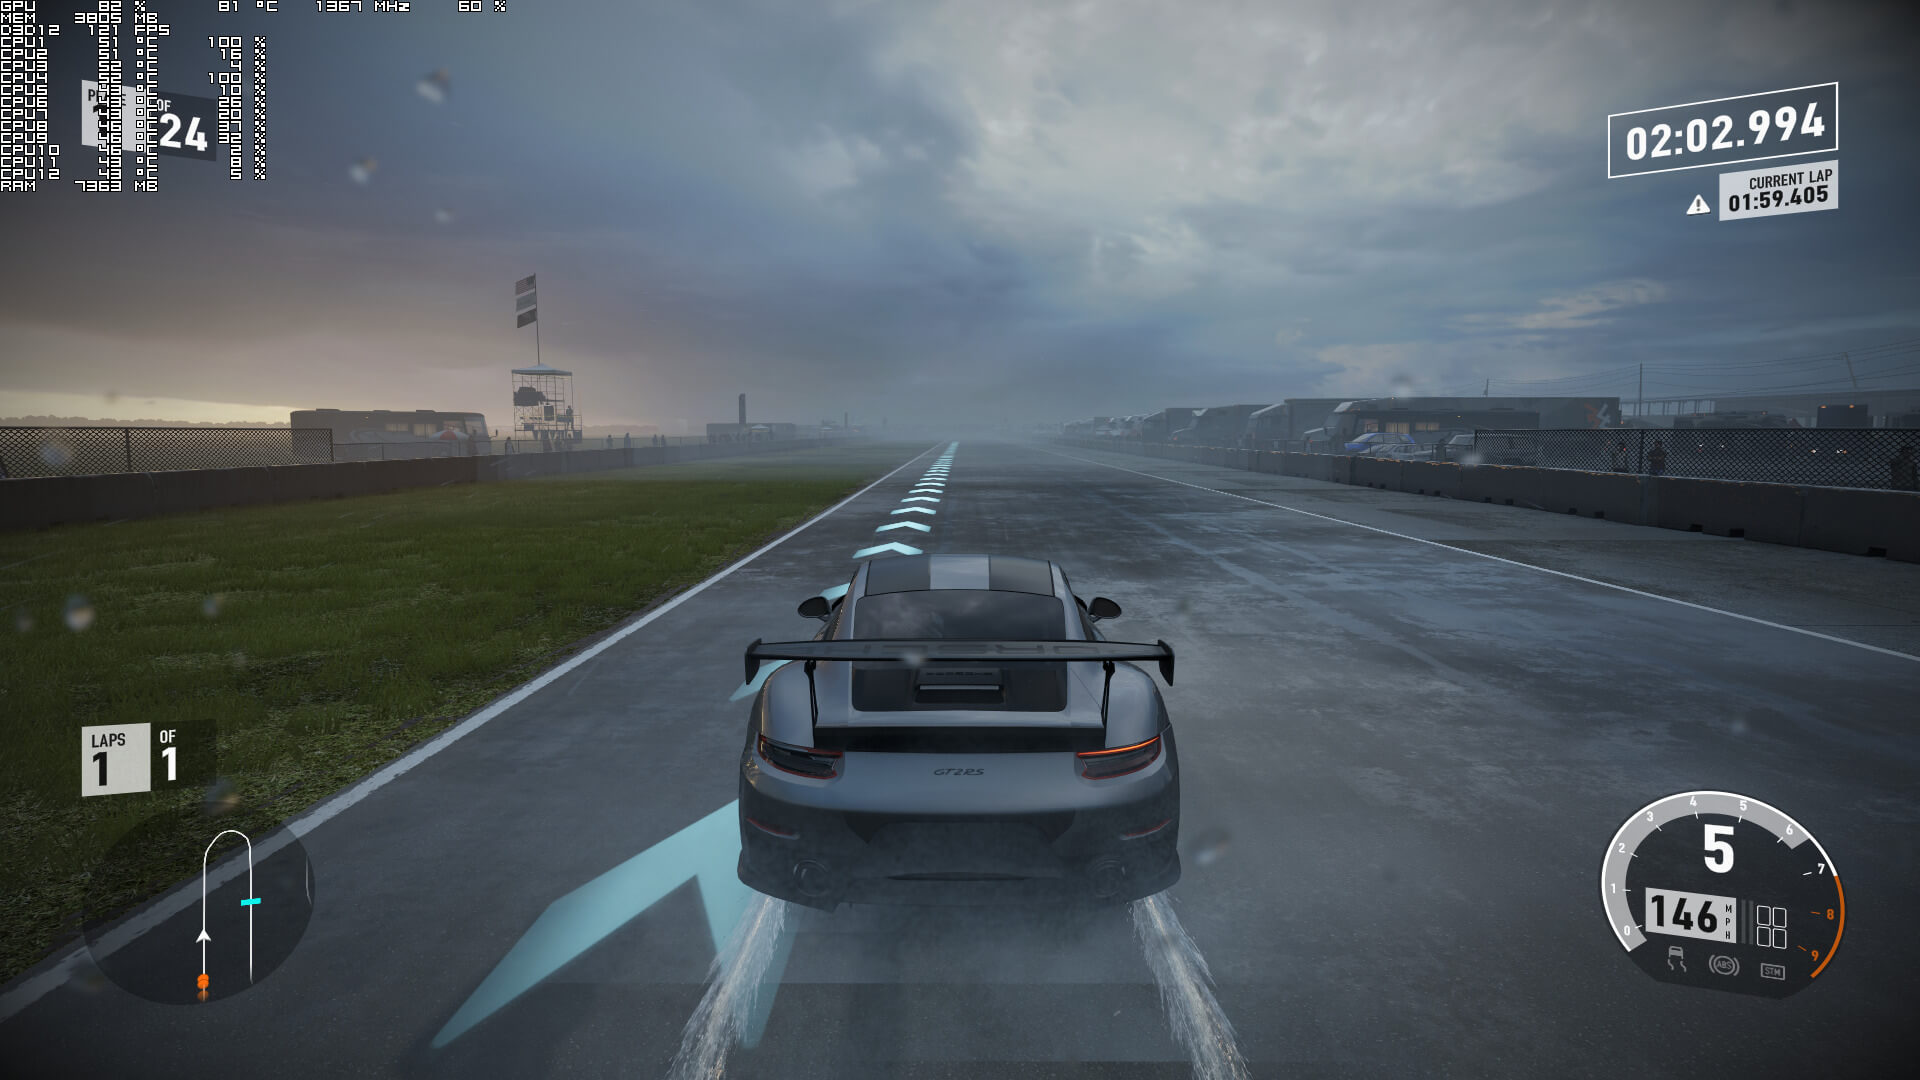 Windows 10 Fall Creators Update completely fixes Forza